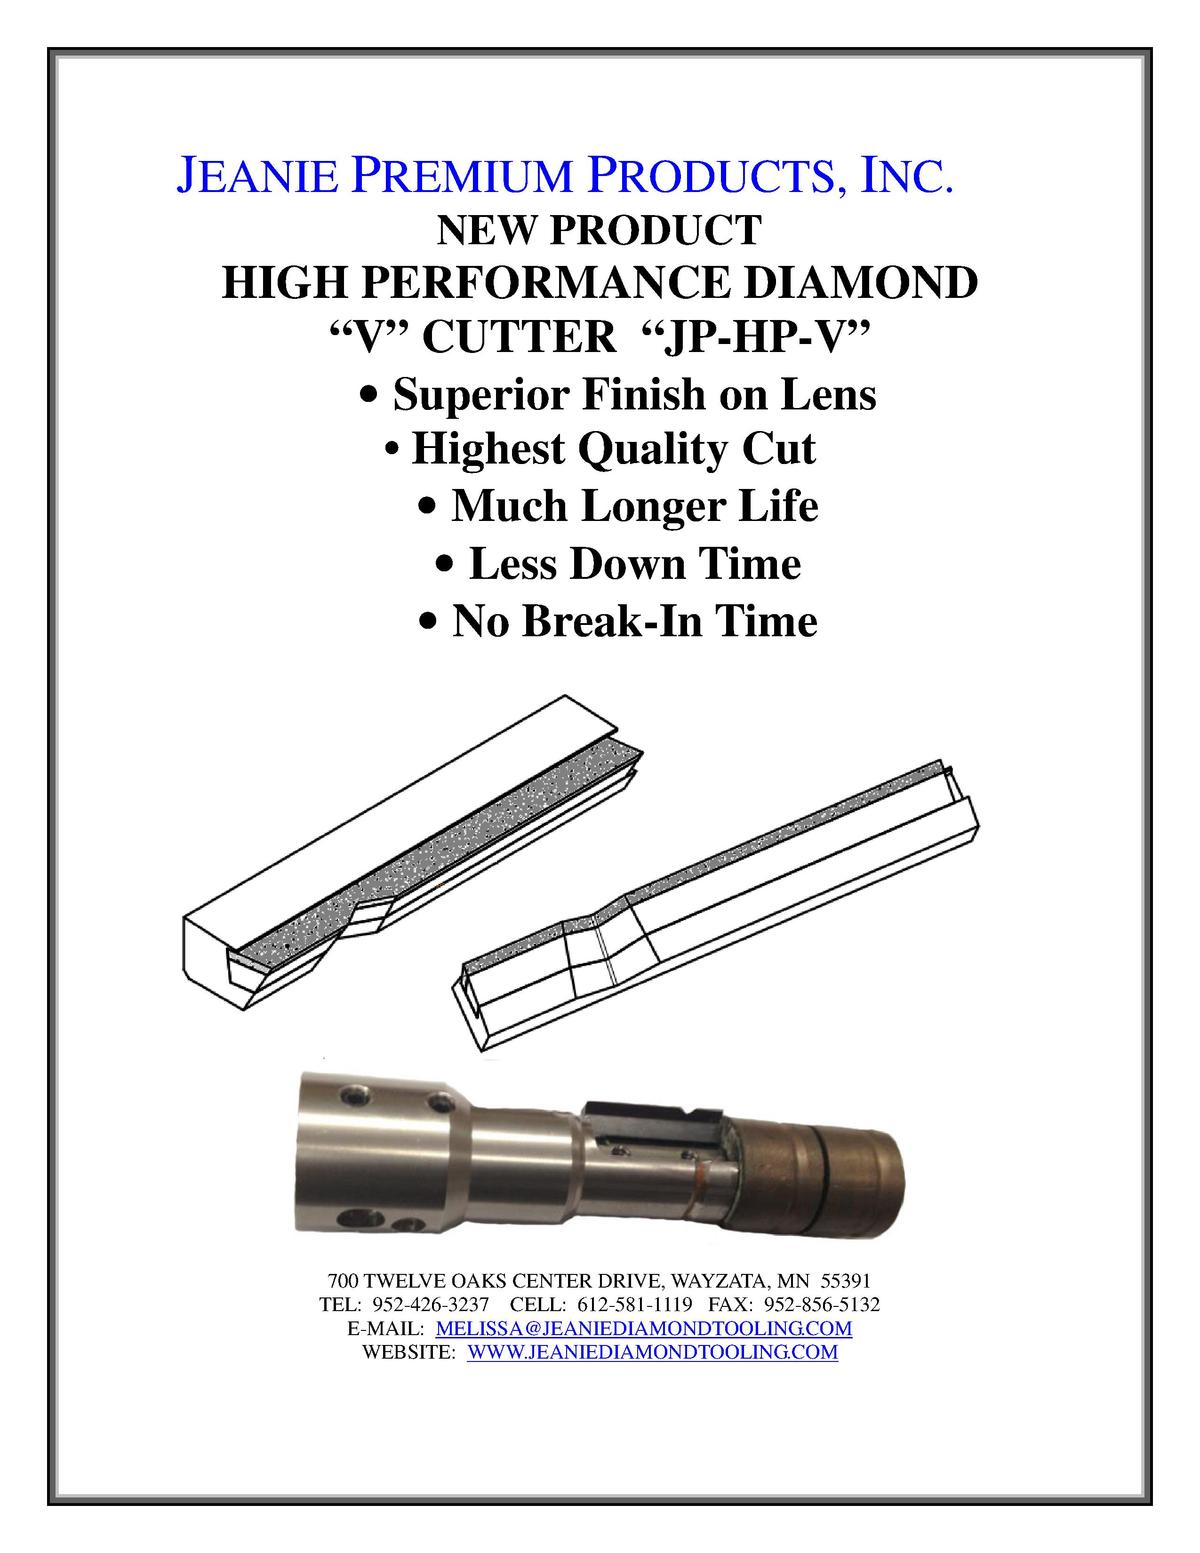 JEANIE PREMIUM PRODUCTS, INC. NEW PRODUCT  HIGH PERFORMANCE DIAMOND    V    CUTTER    JP-HP-V        Superior Finish on Le...